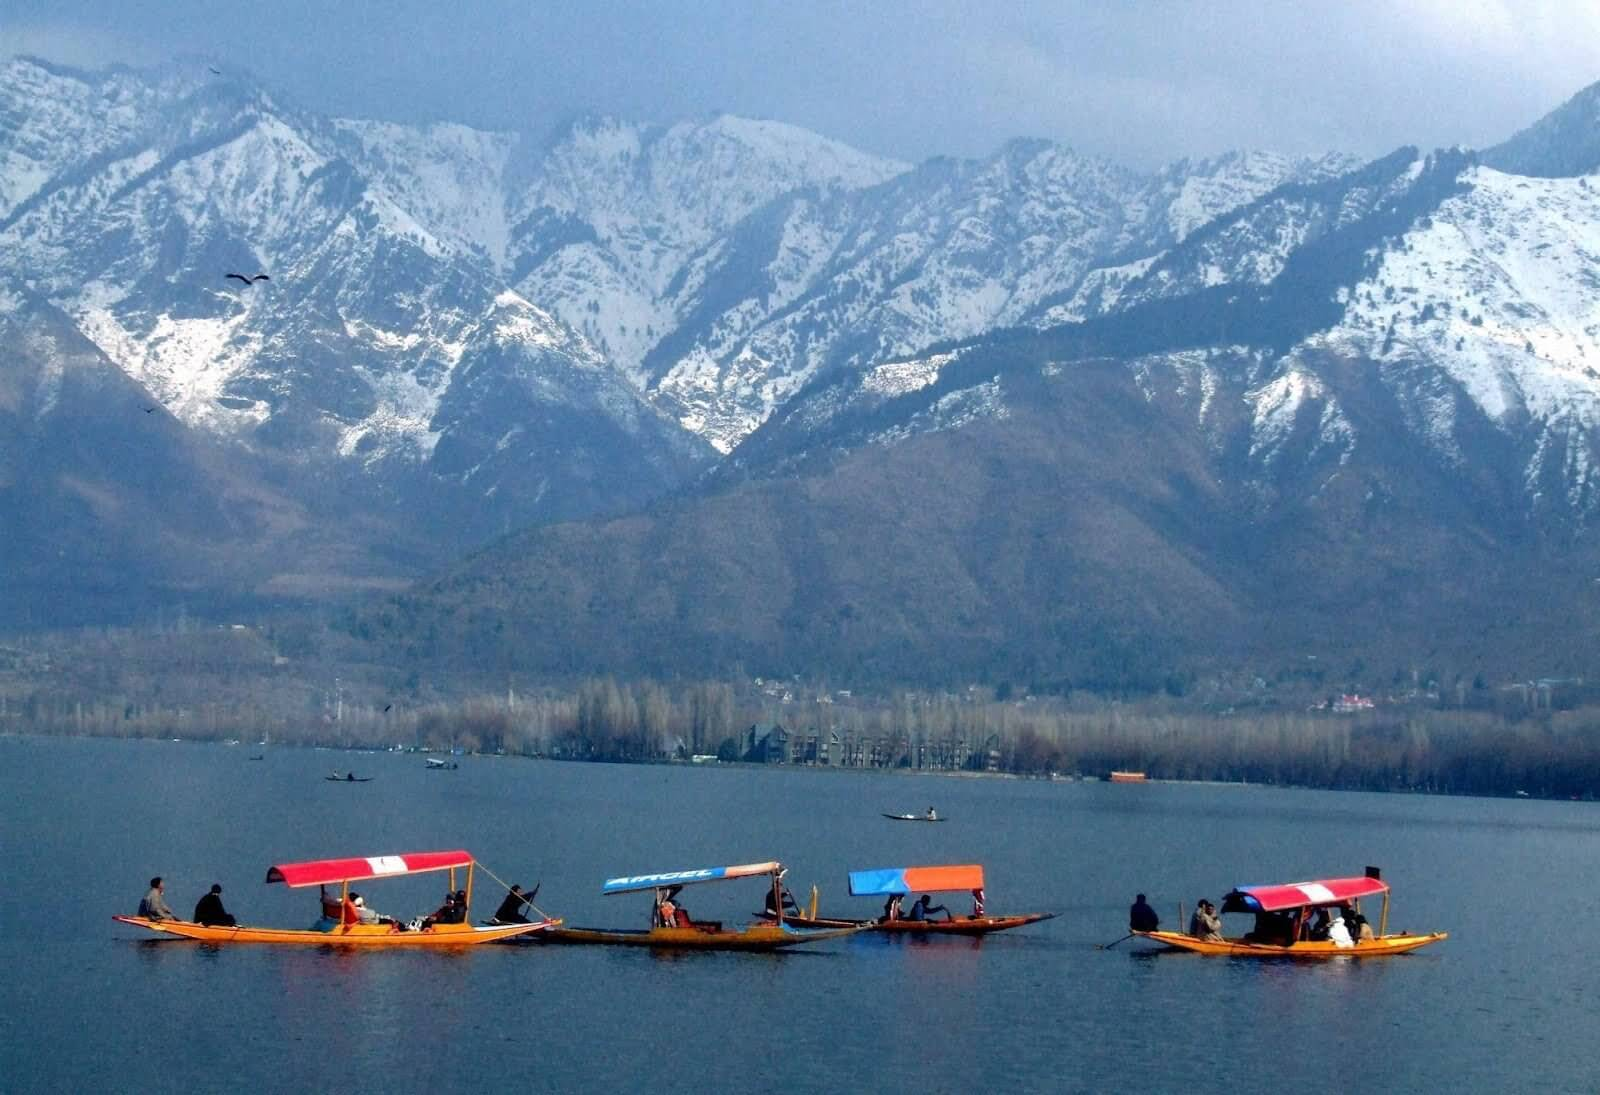 Srinagar Gulmarg Pahalgam Tour Package